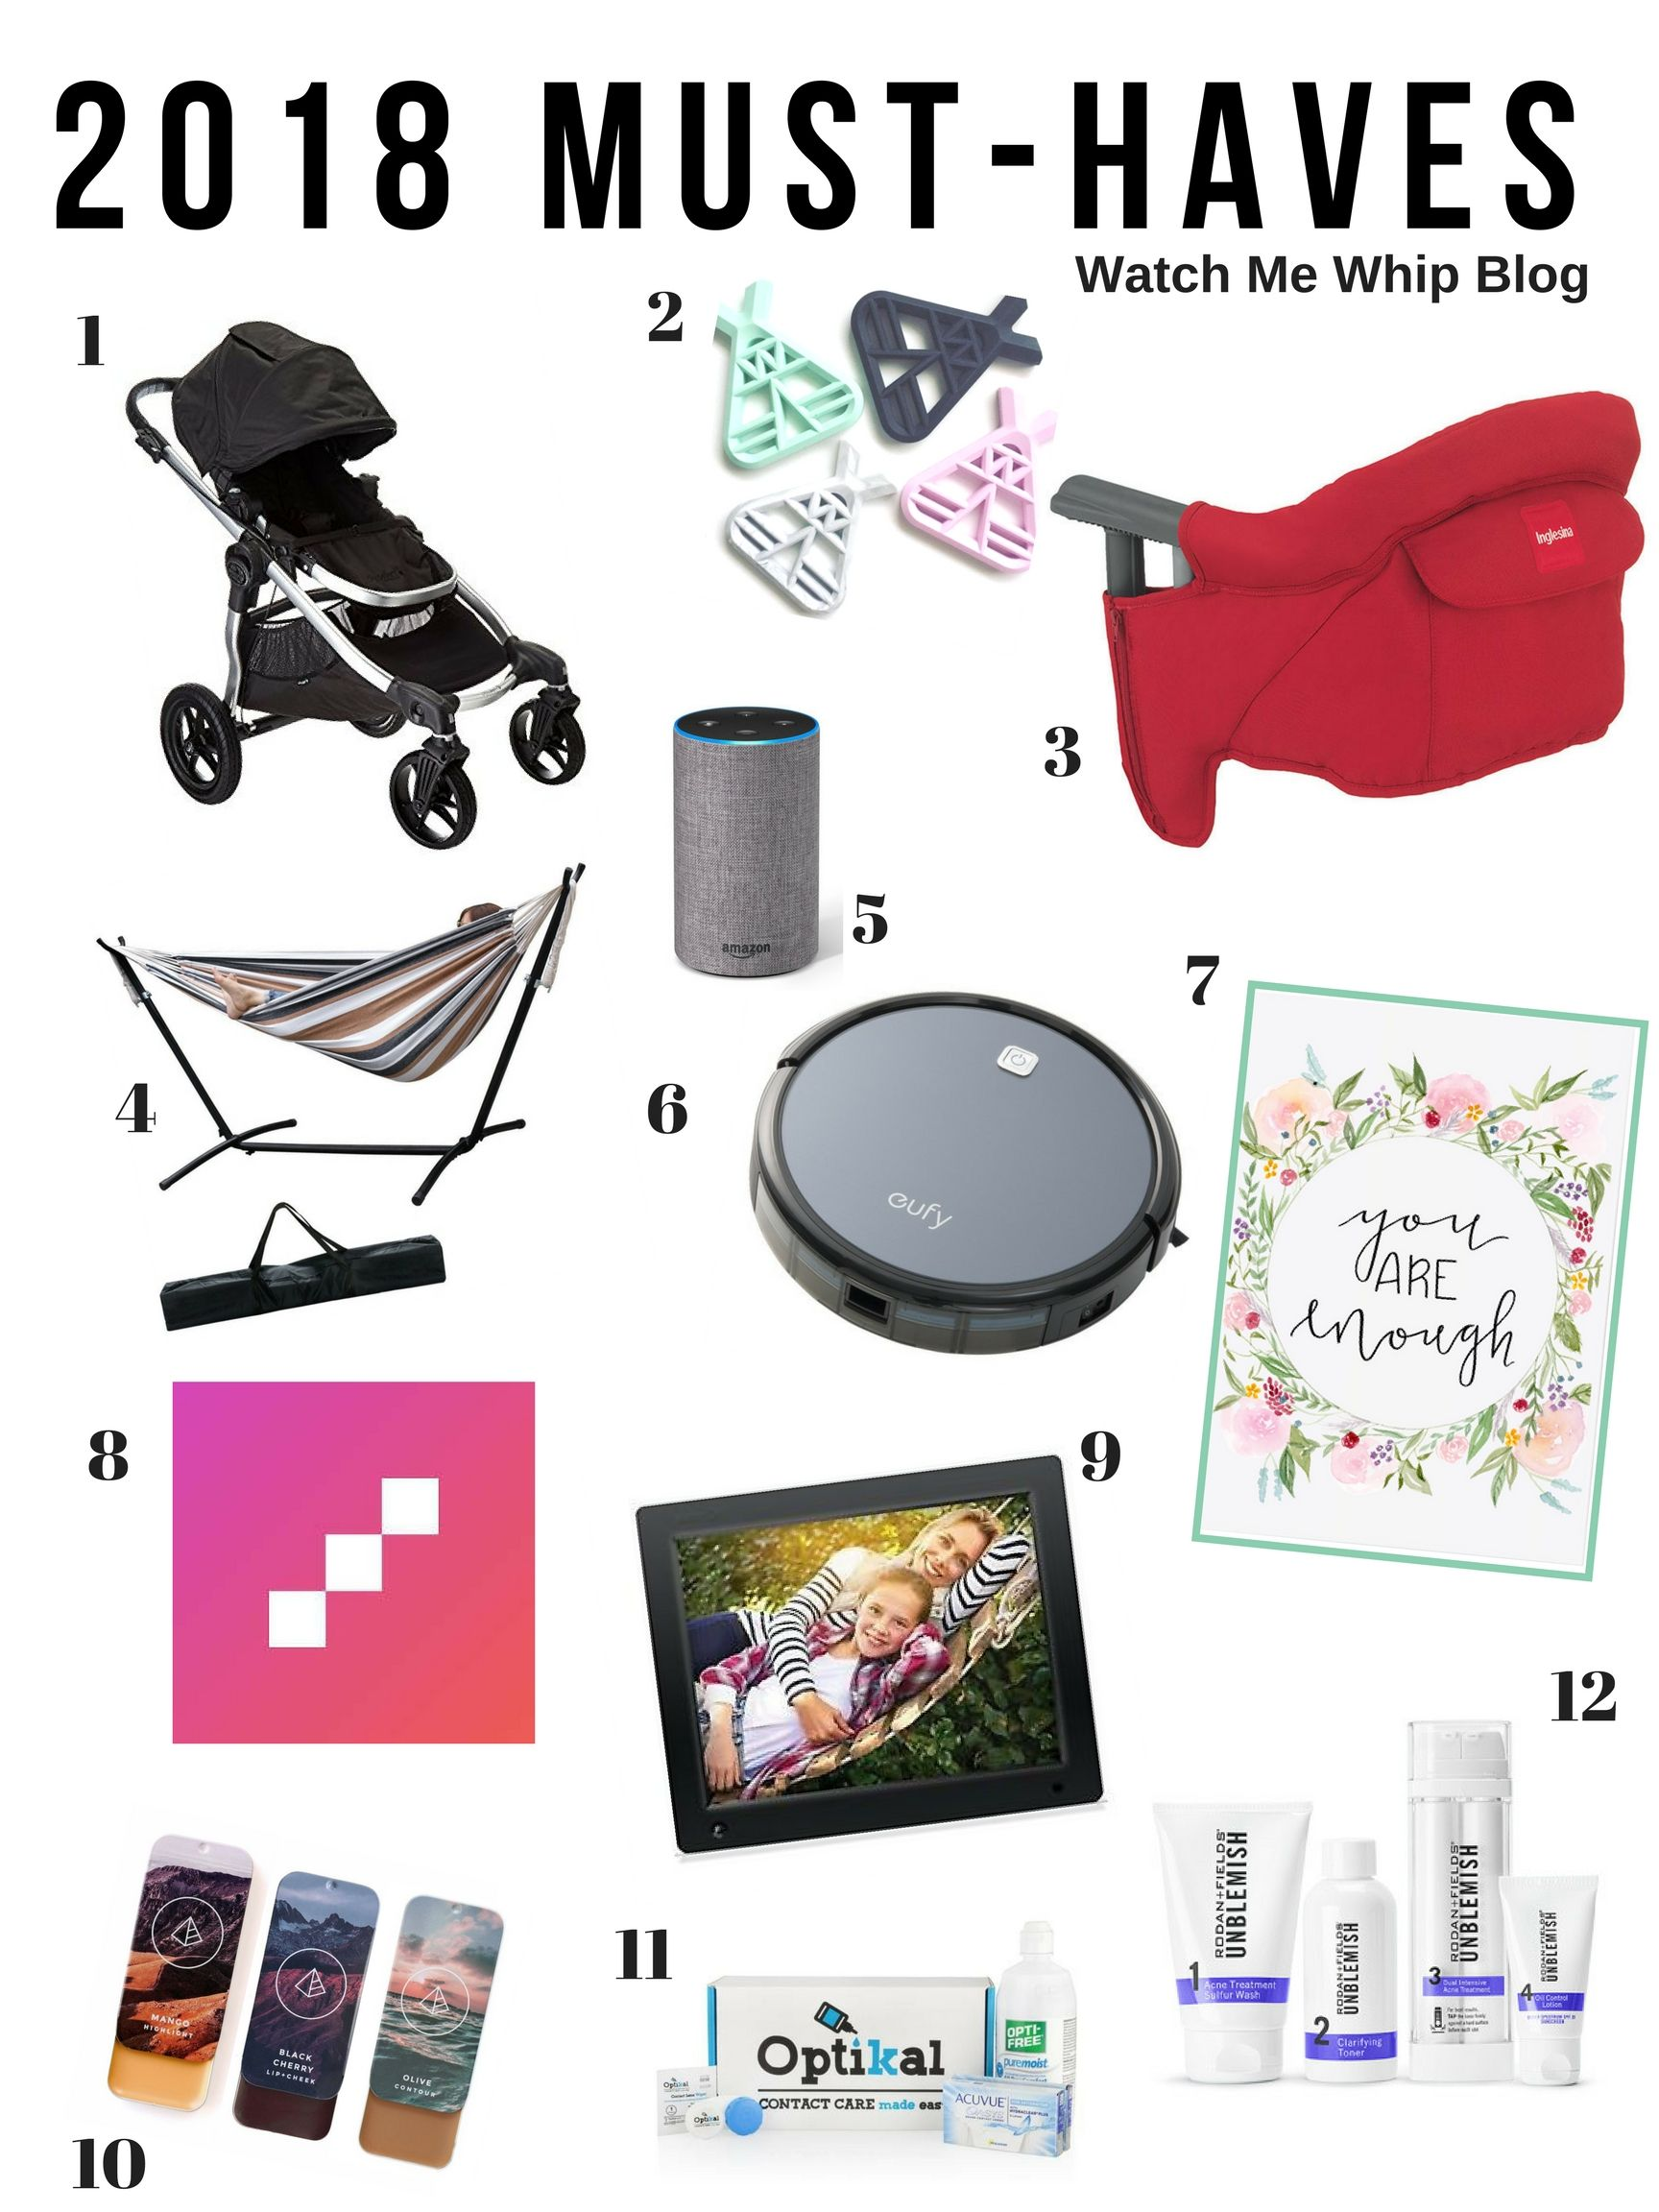 2018 Must Haves: 2018 Must-Haves. Everything You Need For Baby, Beauty And